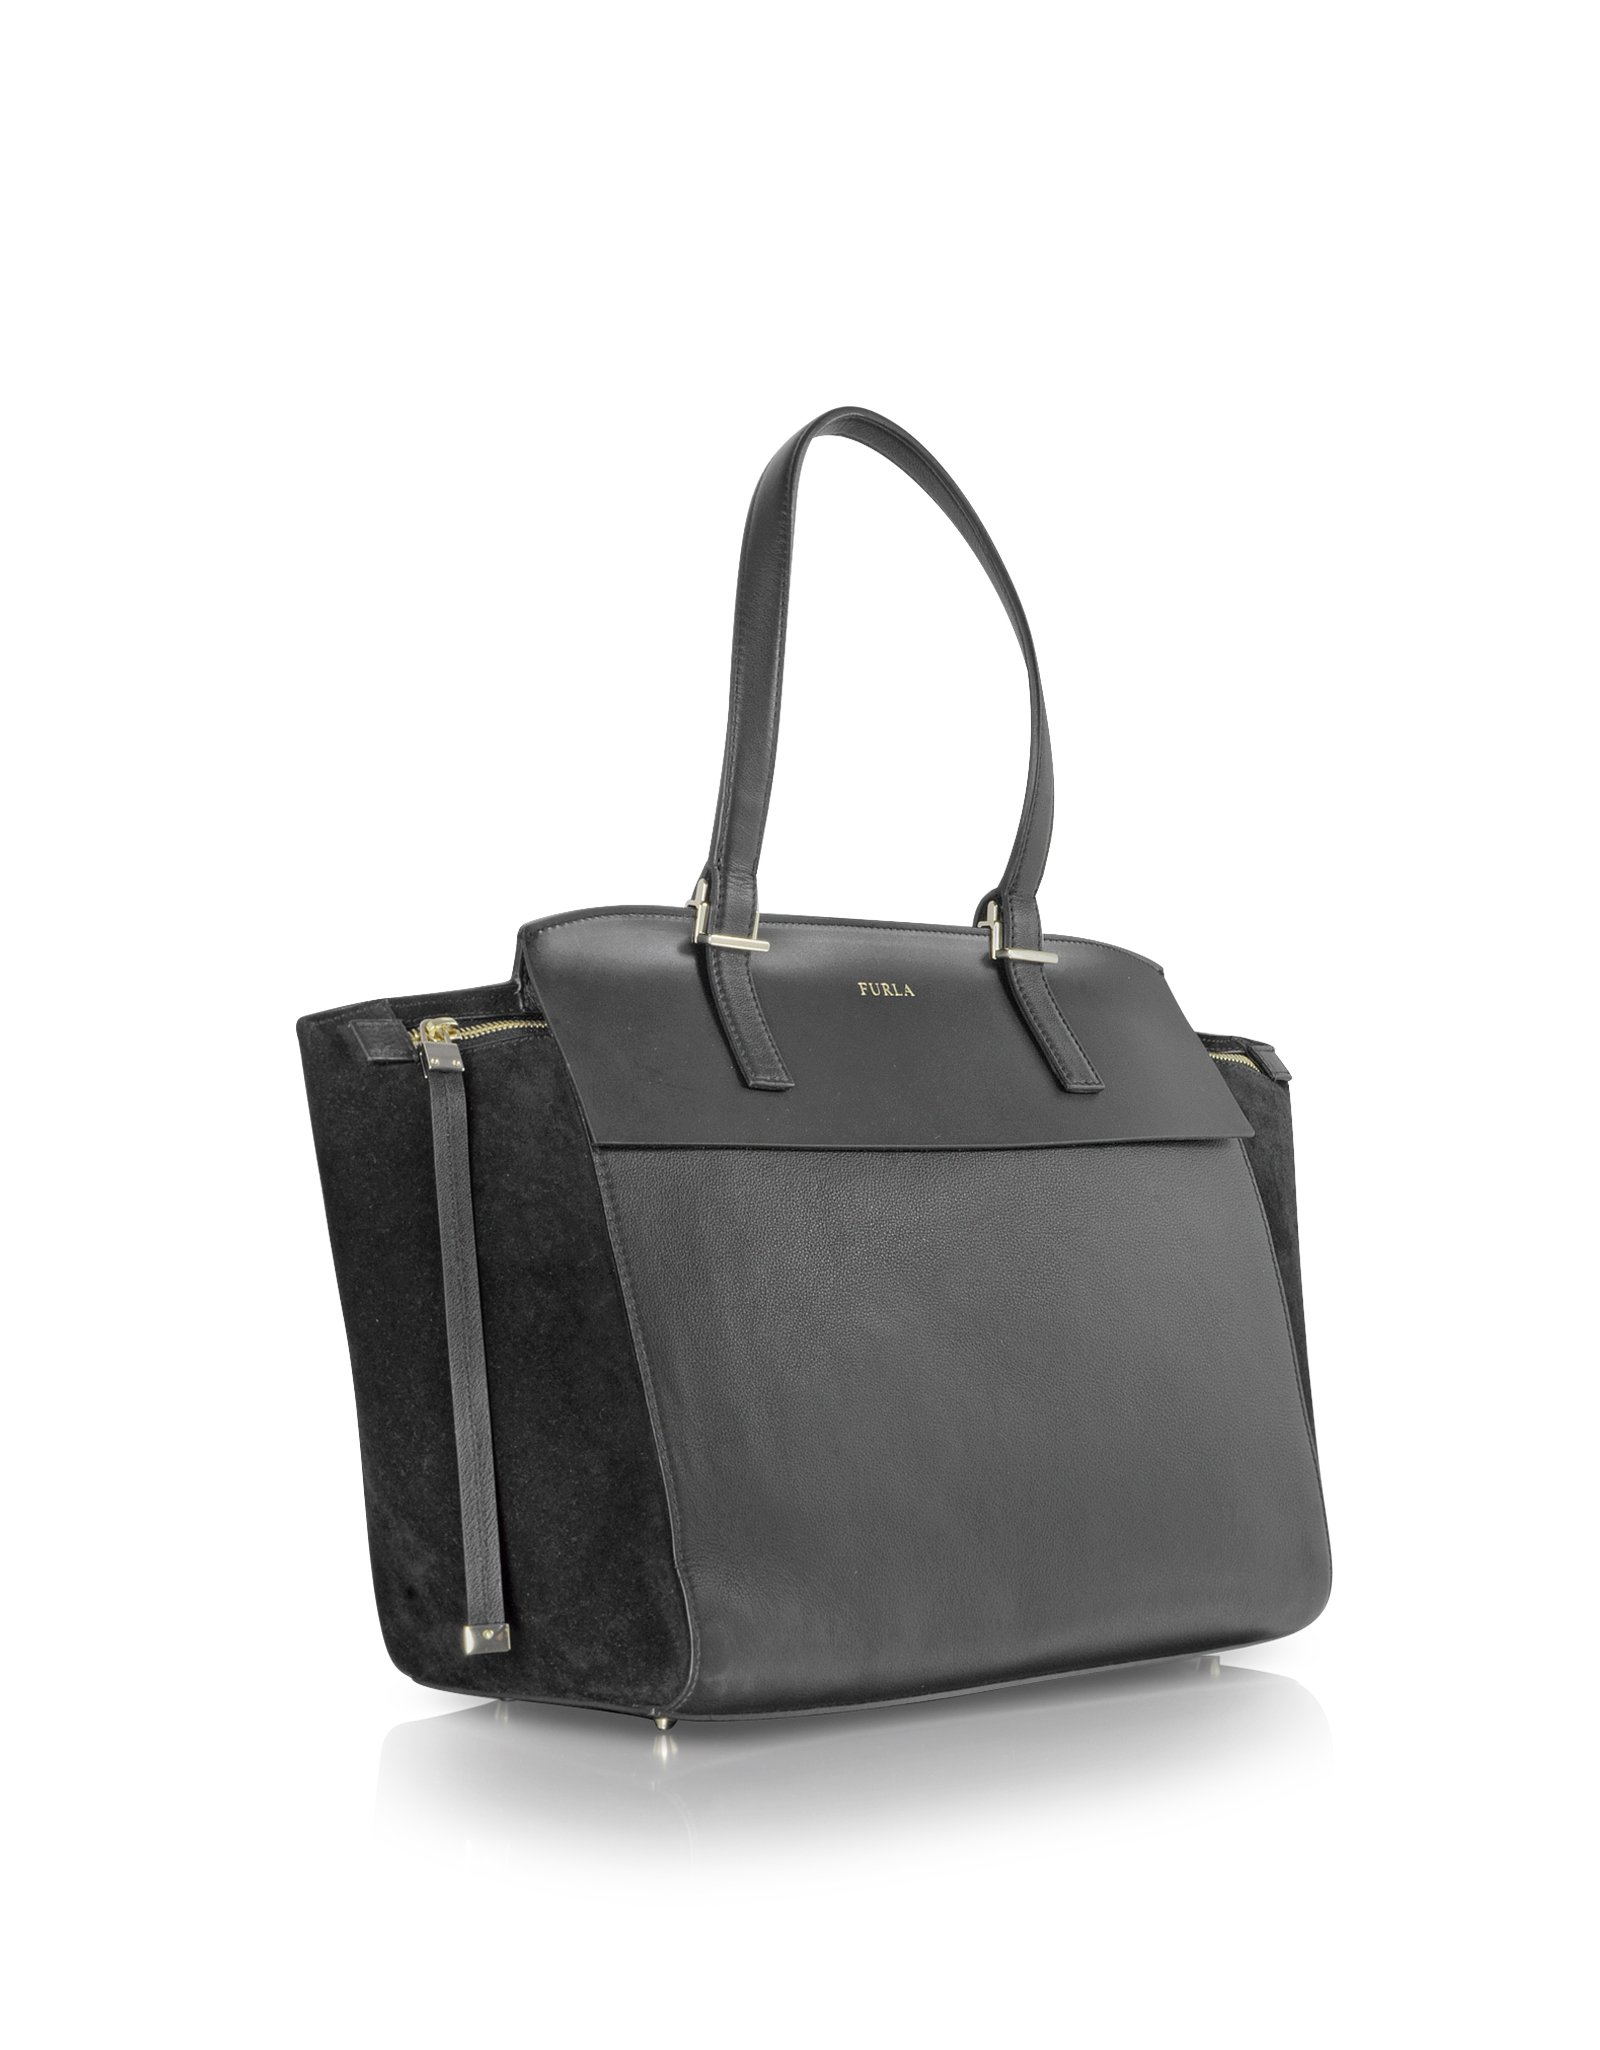 Clearance Browse Mirage tote bag - Black Furla Cheap Sneakernews Visa Payment Cheap Price Footaction Cheap Price Lowest Price ngPGNgUv